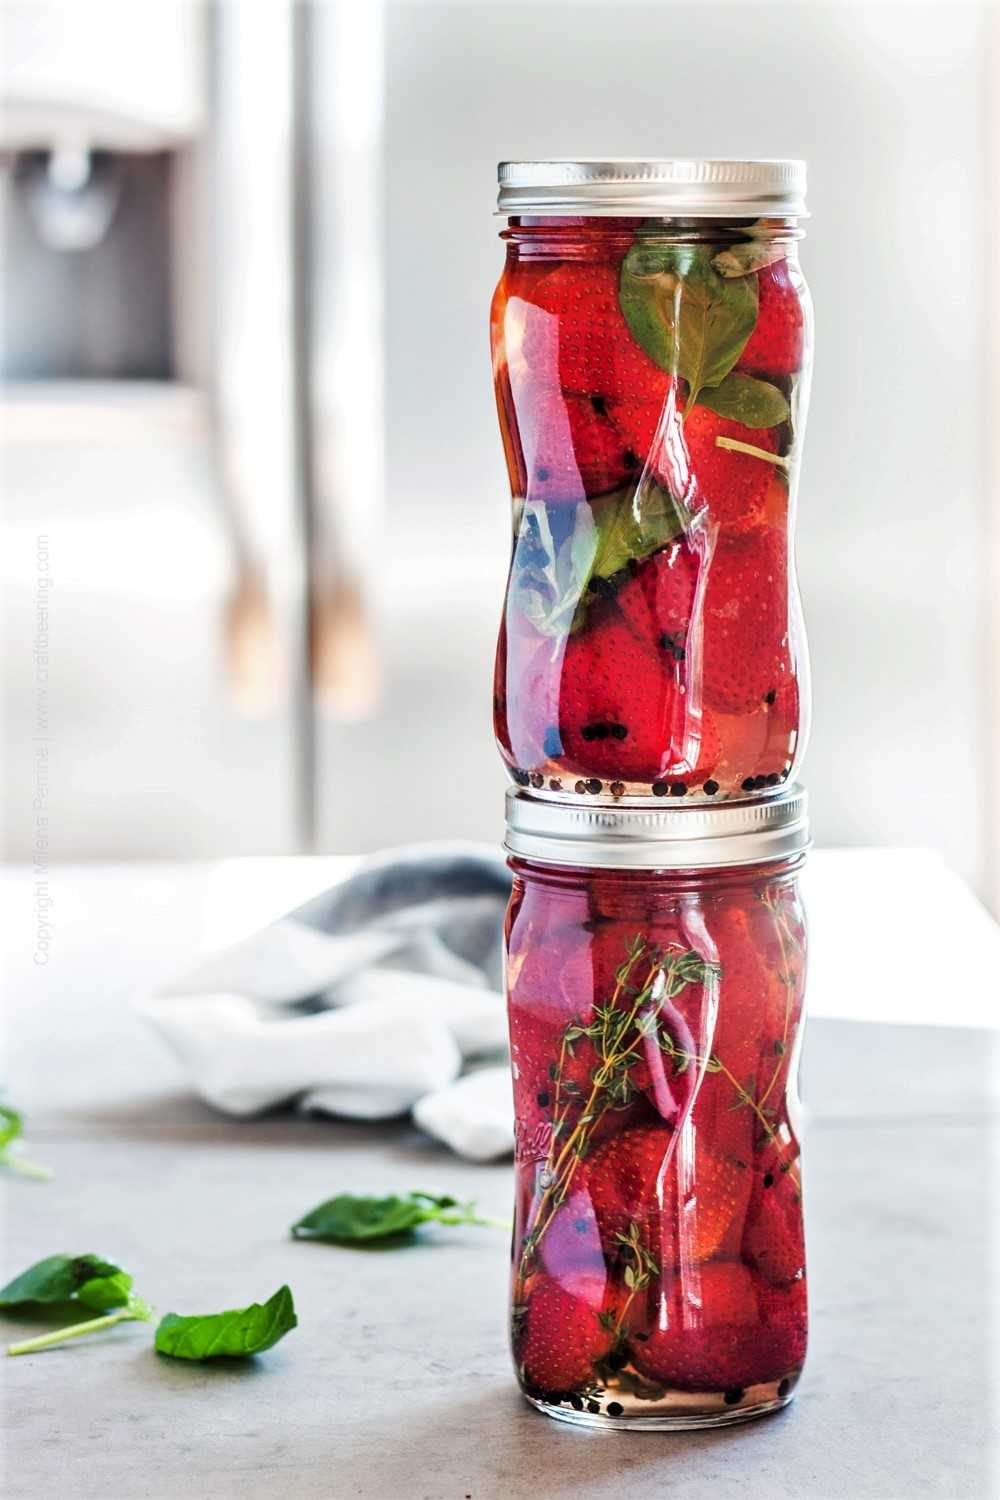 Stacked jars with strawberries in pickling liquid